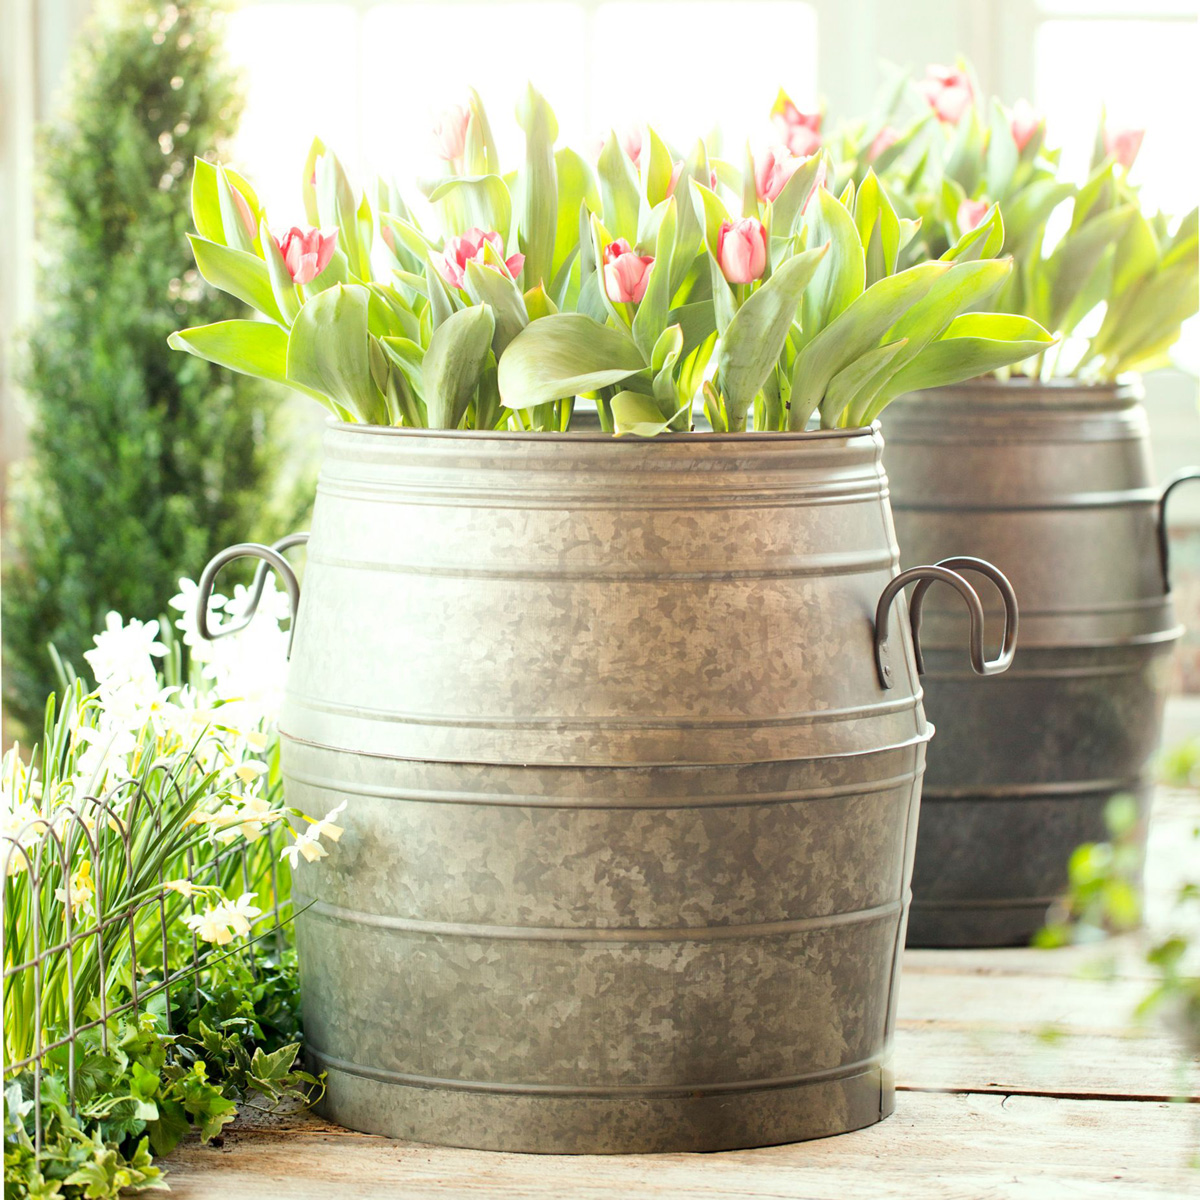 Metal planters are a stylish way to grow blooming flowers and green plants alike. Added to your windowsill or your back patio, planters create a meditative hobby with a beautiful result. Wayfair has planters in a variety of shapes and sizes, so you have plenty of ways to create a new mini-garden.